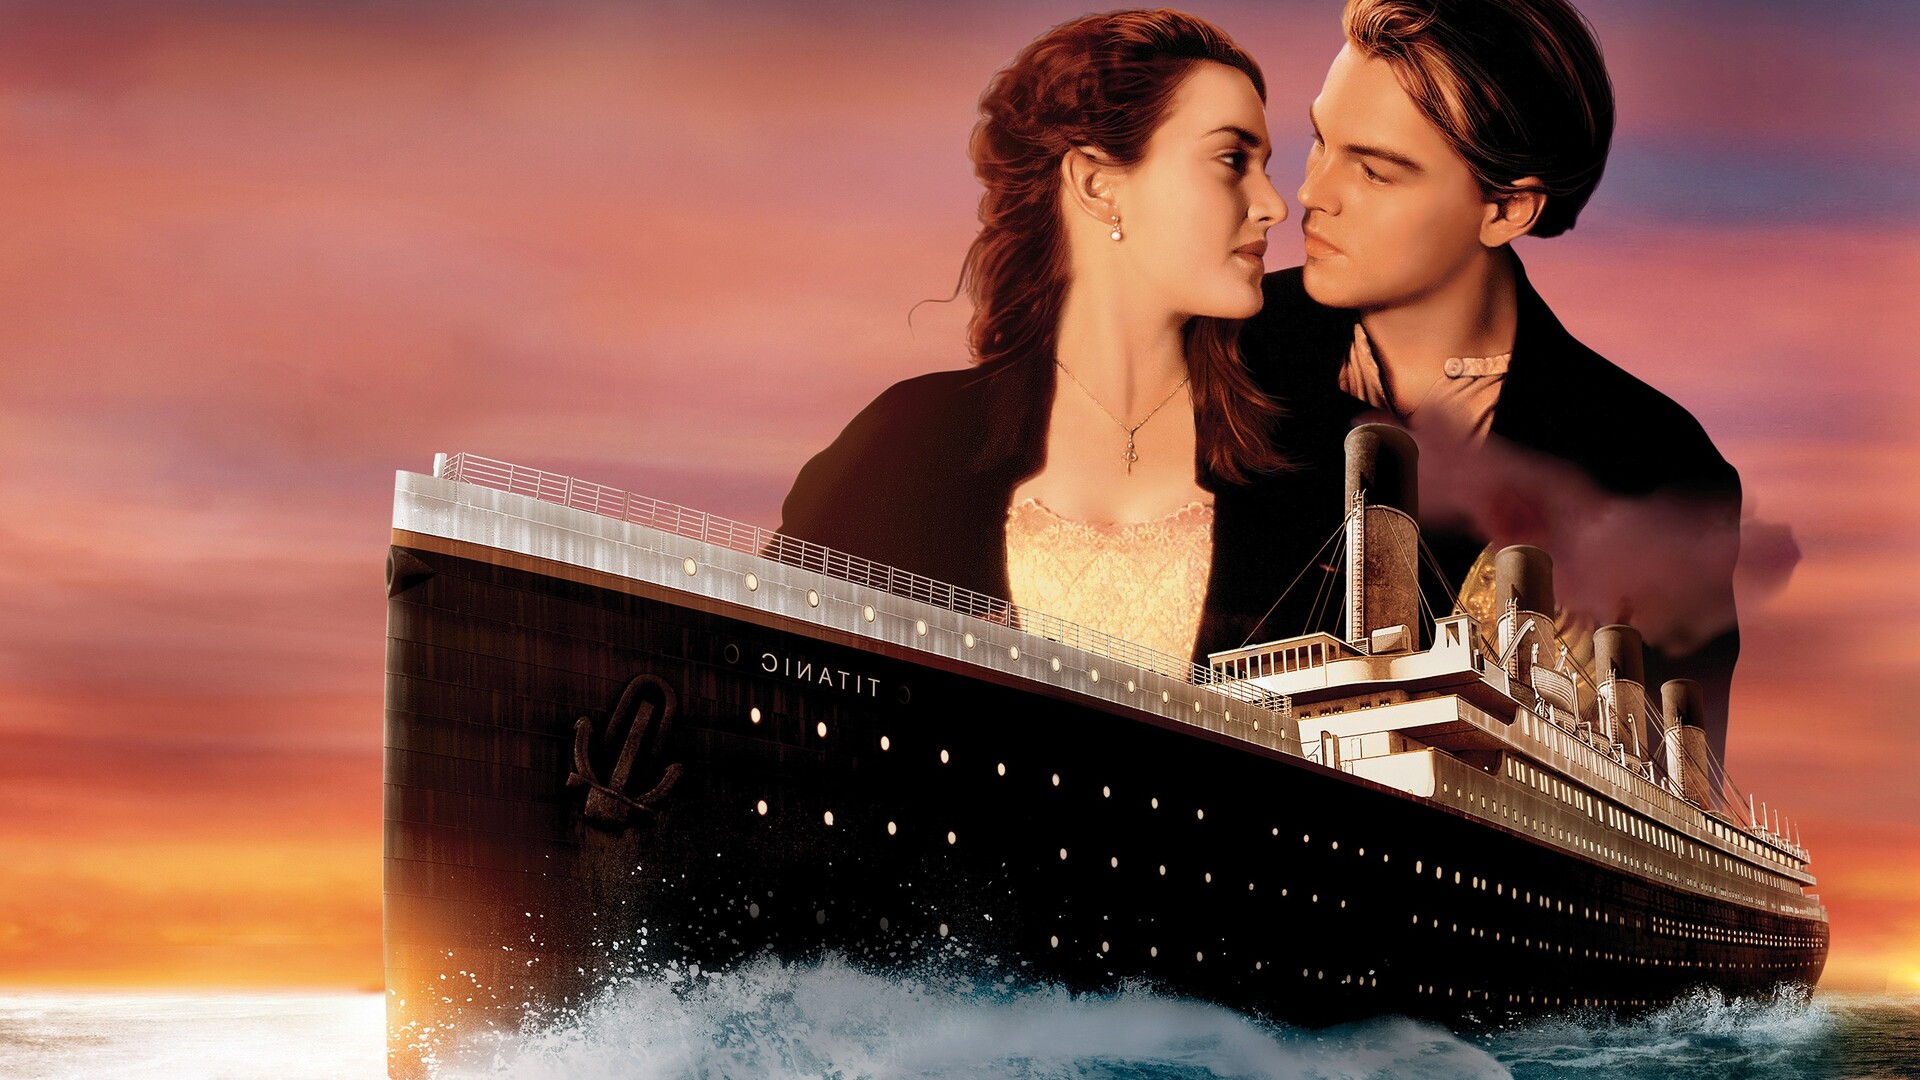 1920x1080 titanic movie full hd laptop full hd 1080p hd 4k